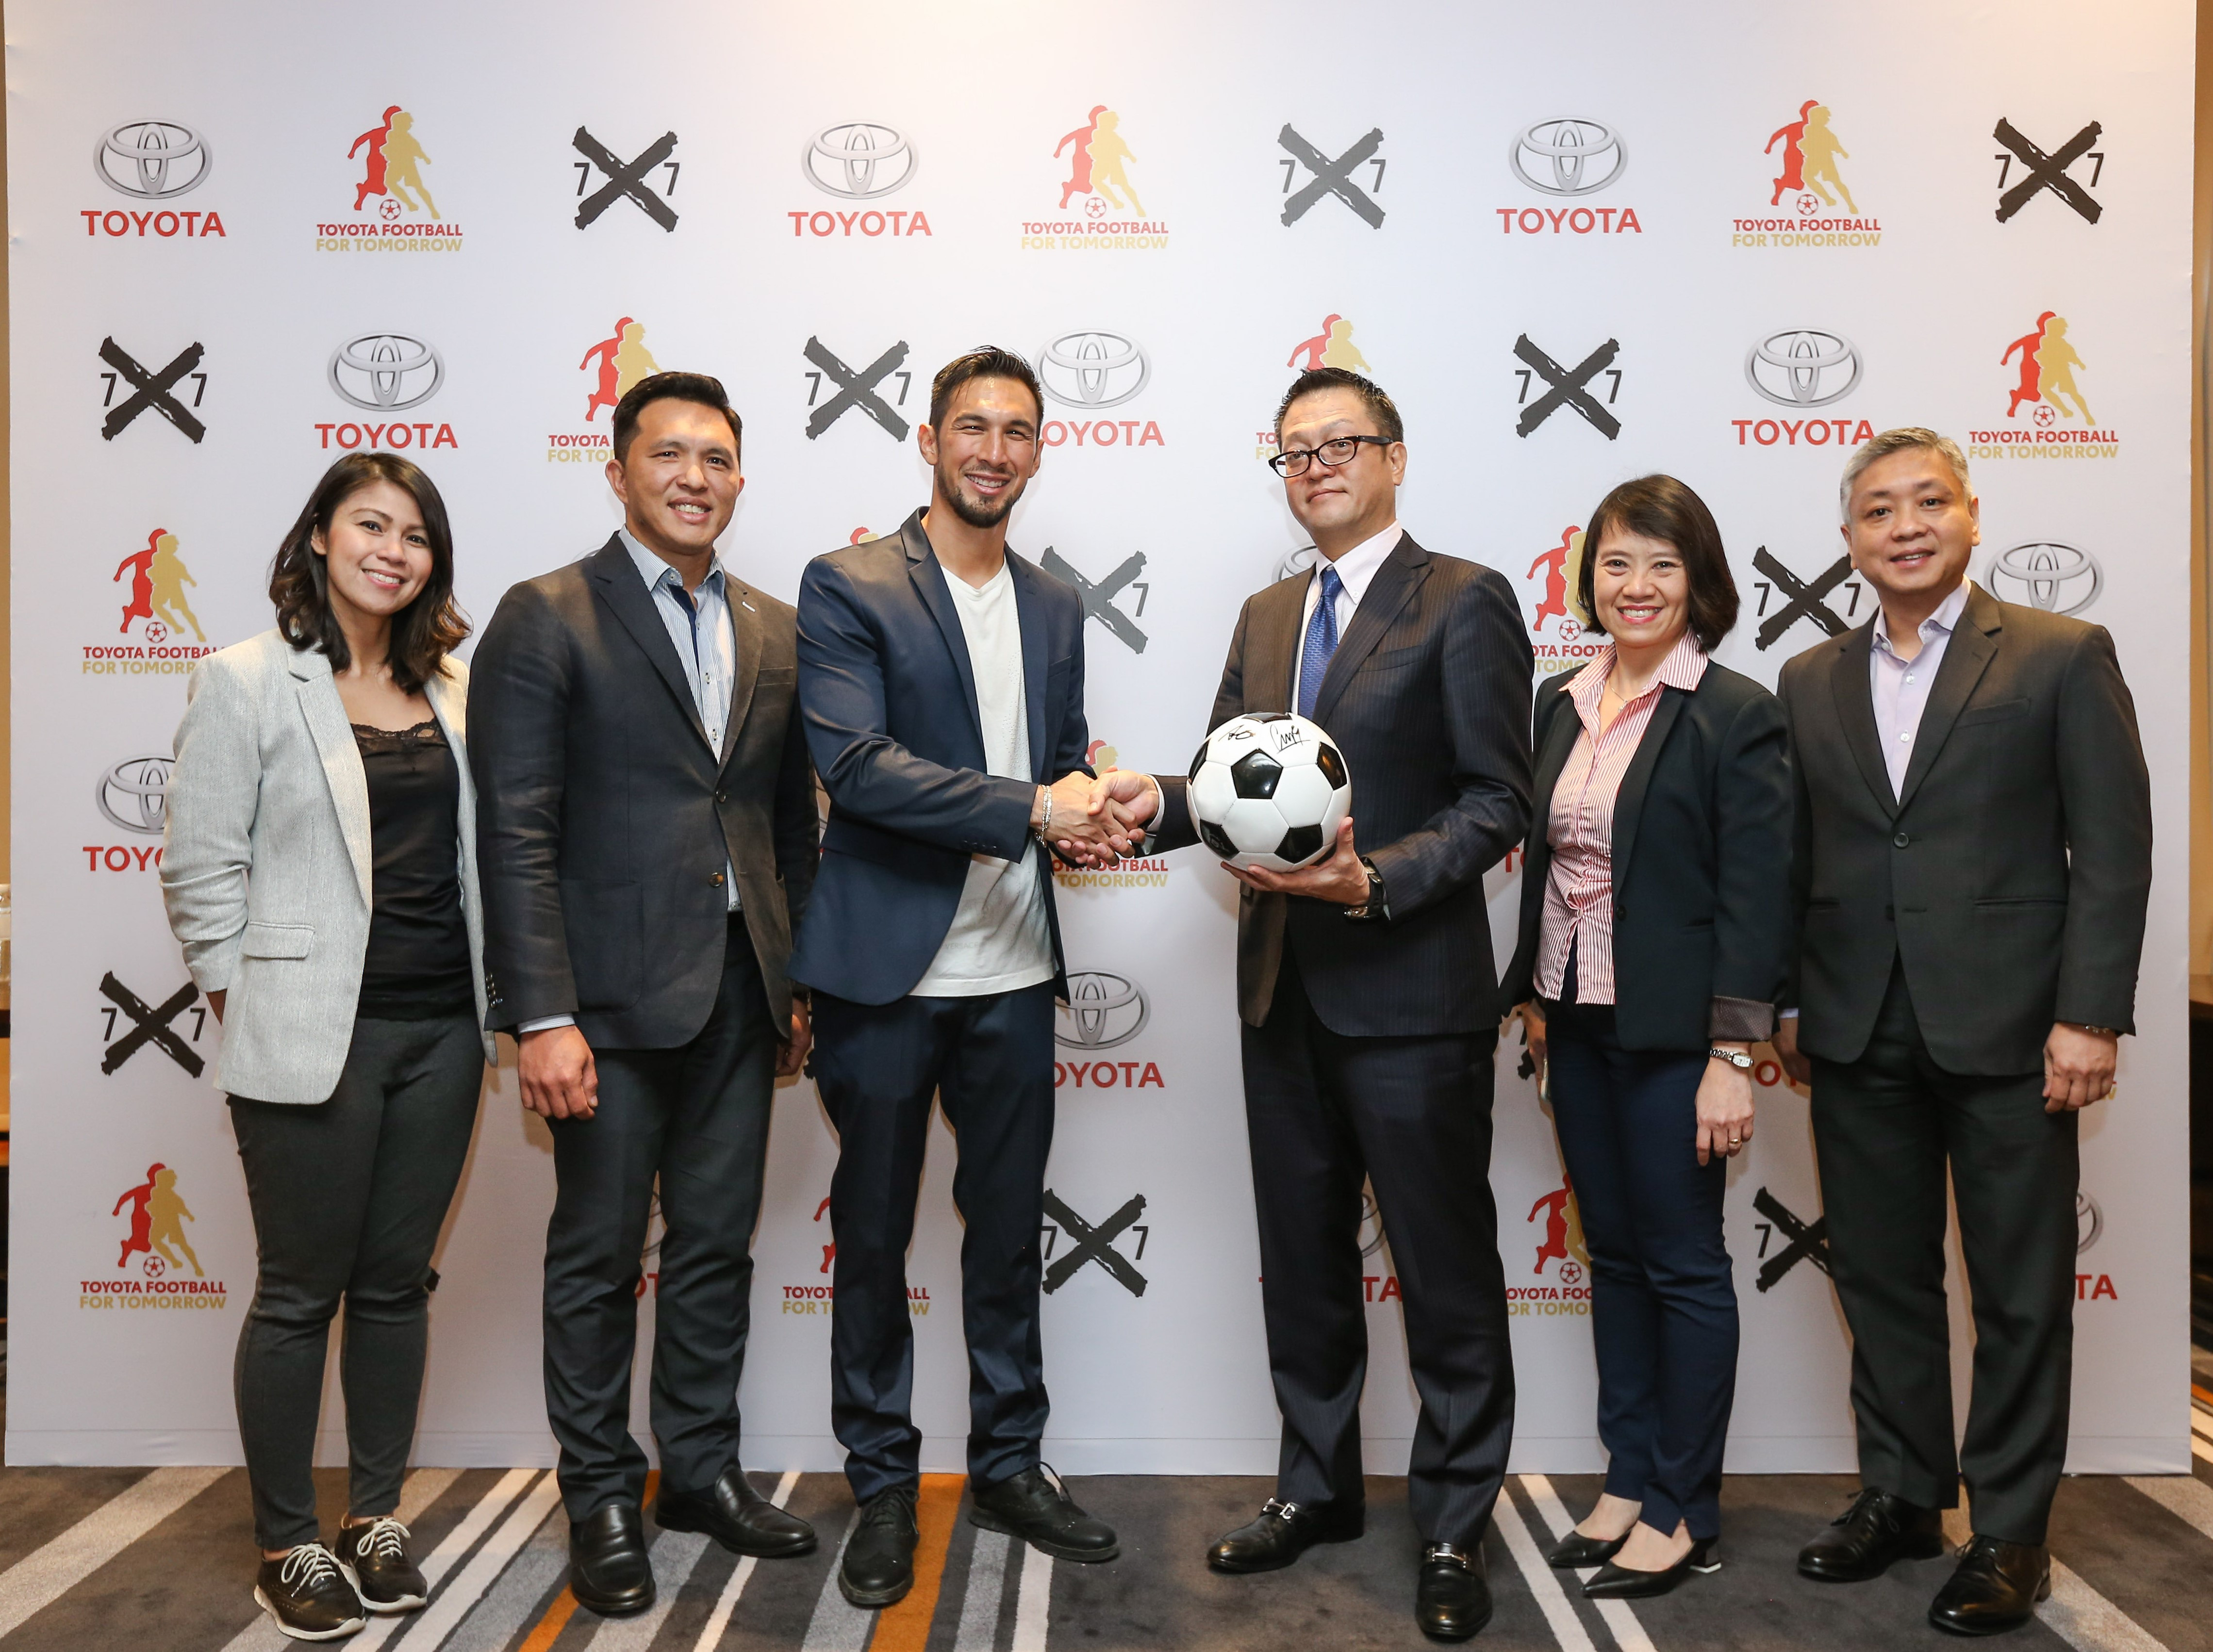 Toyota Kicks Off Football For Tomorrow Program In The Philippines